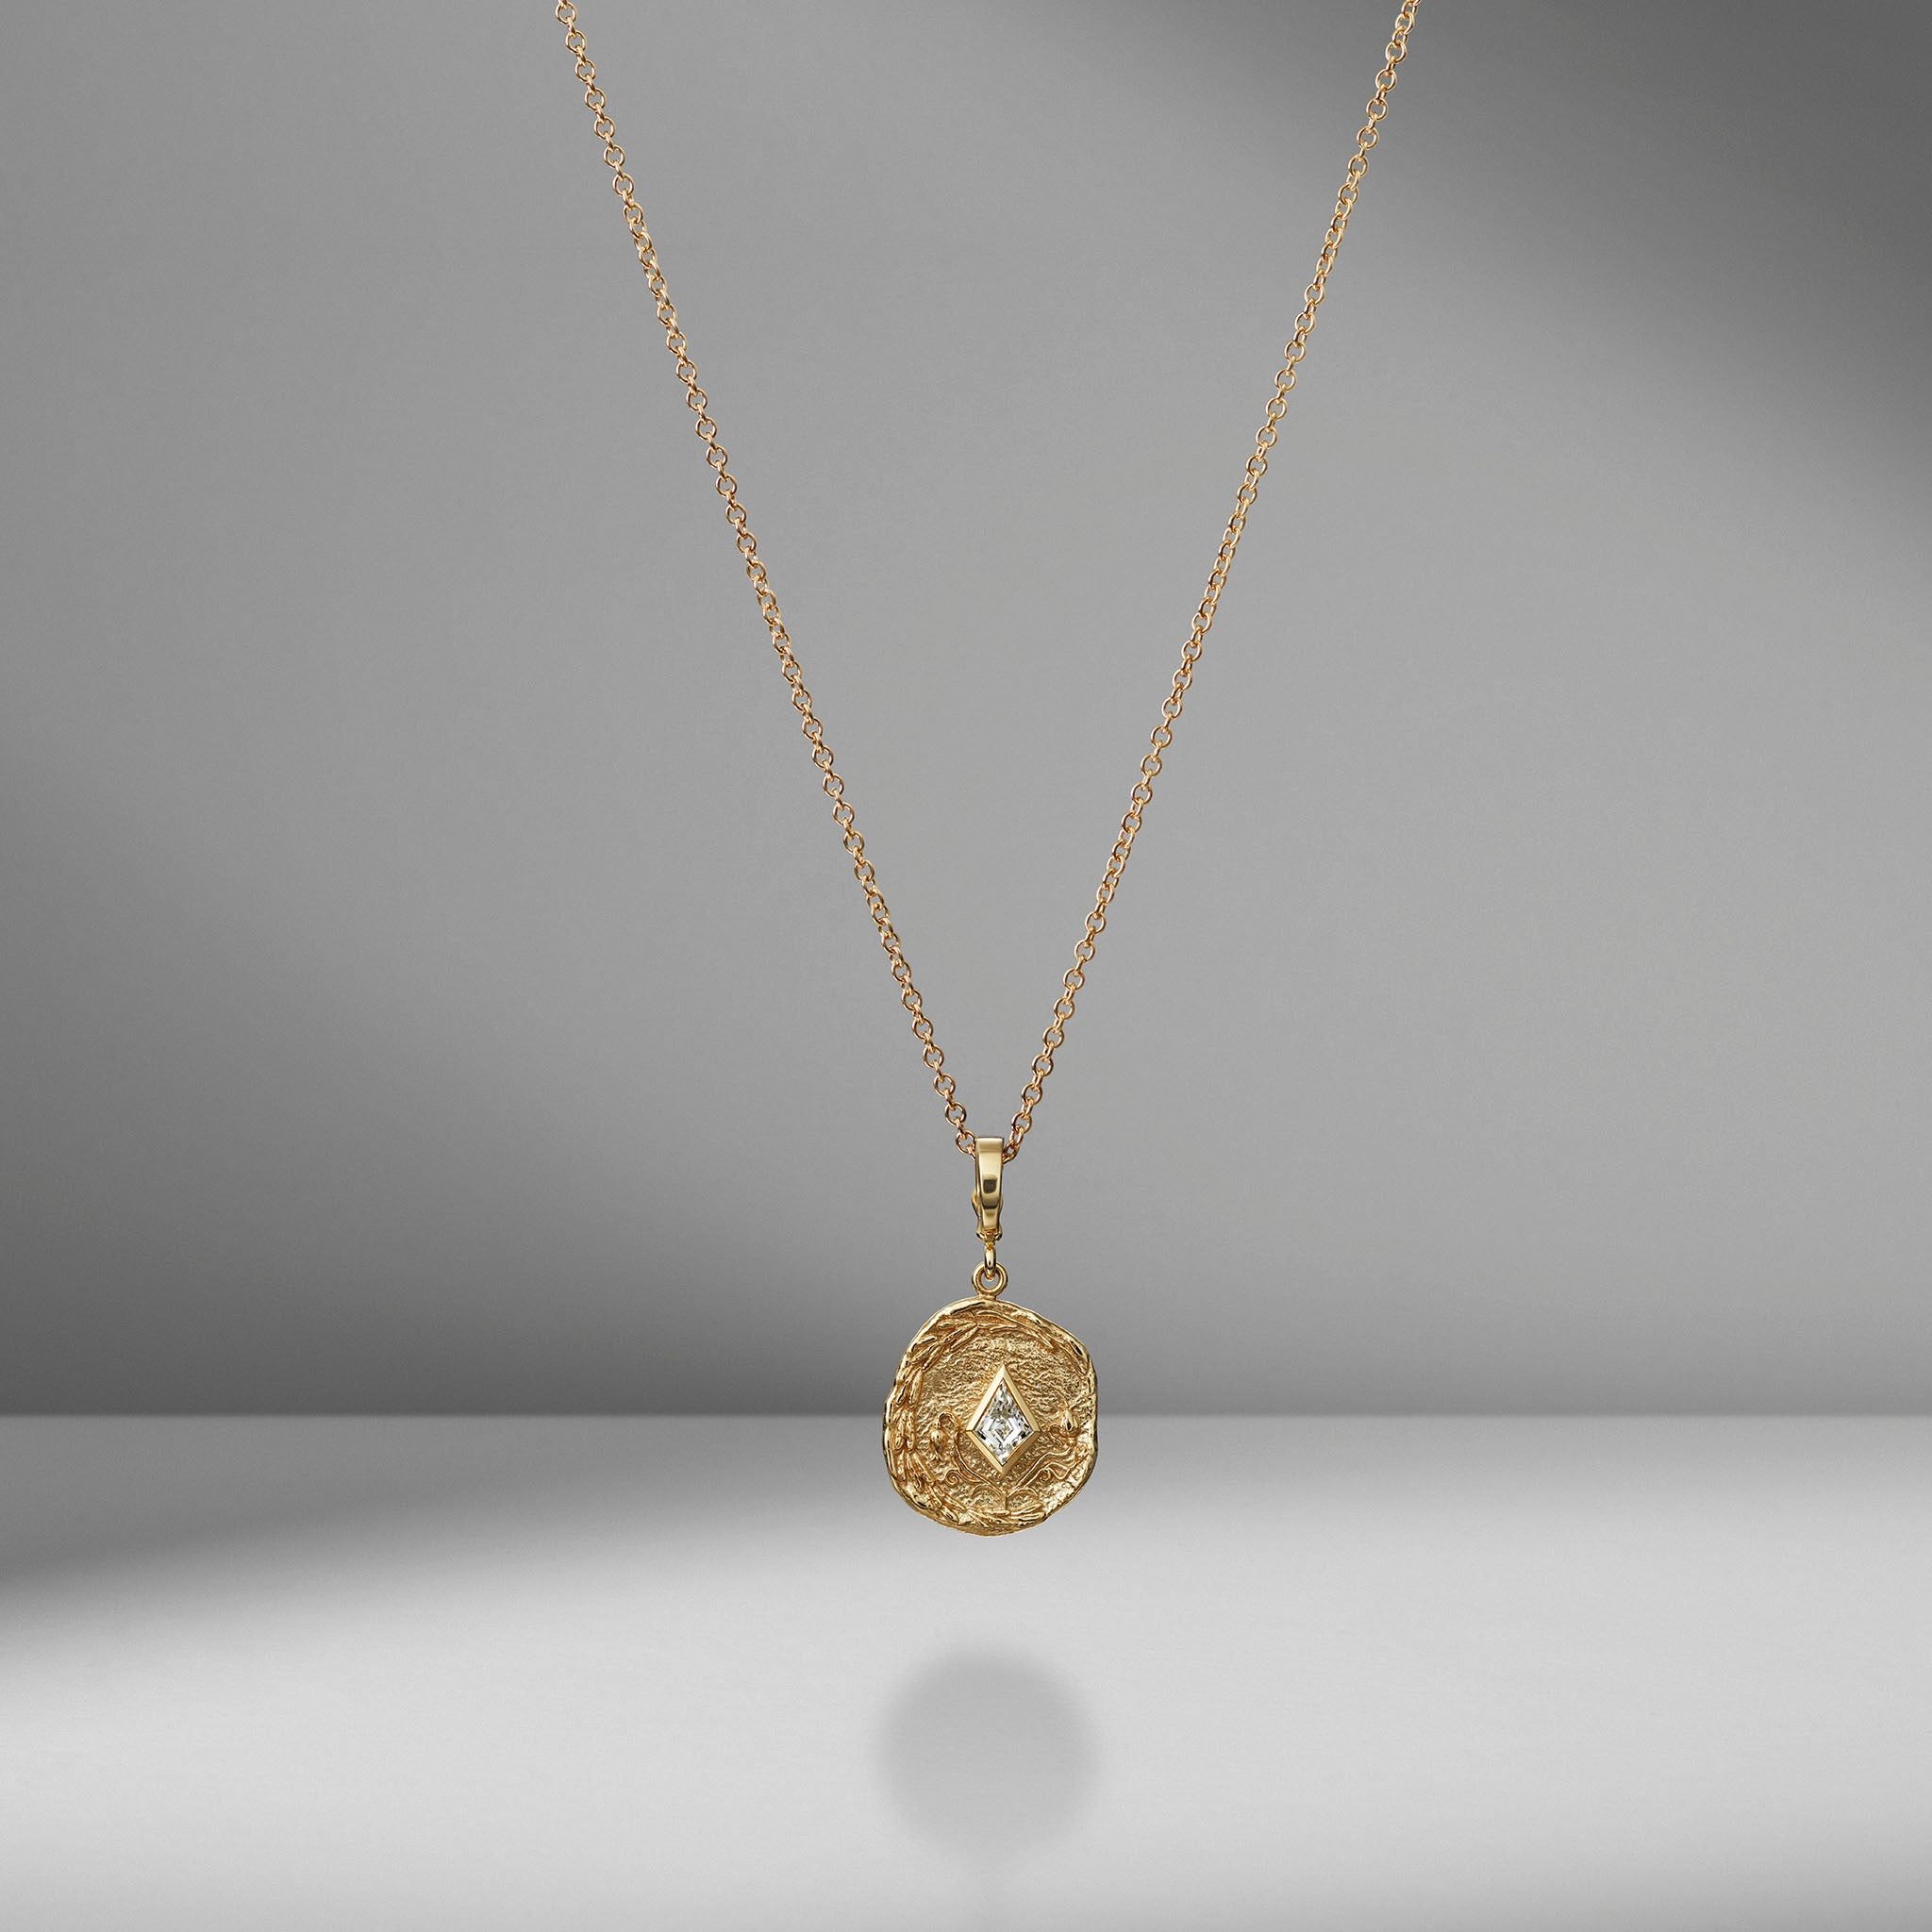 Small Olive Branch & Rose Bud Kite Diamond Coin Charm Necklace